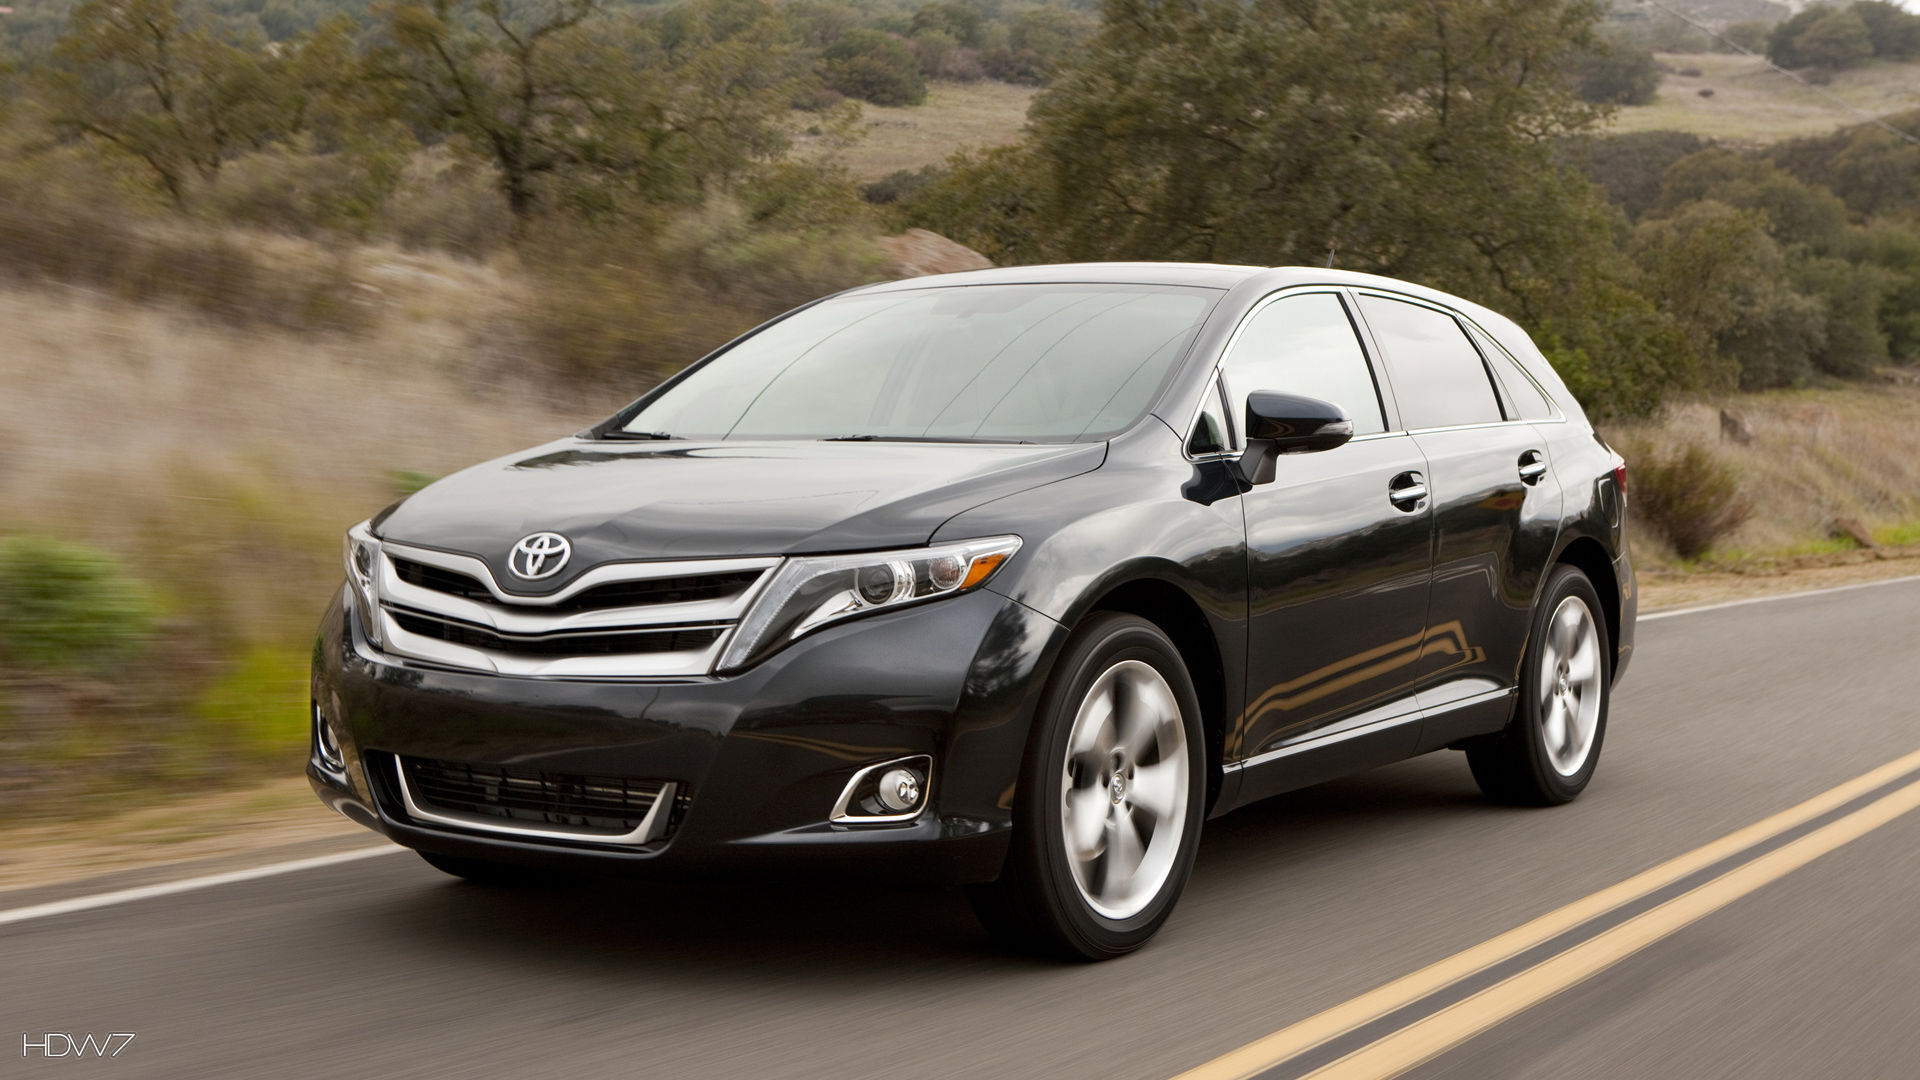 toyota venza 2013 car hd wallpaper